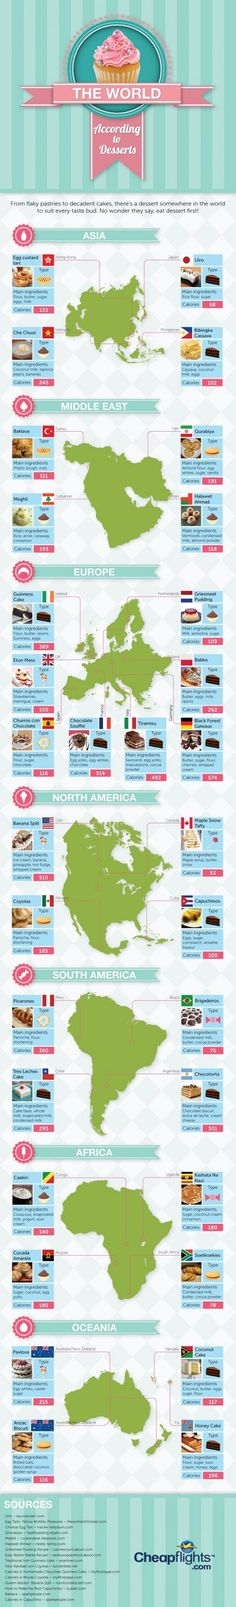 "Infographic: ""The World According To Desserts"""